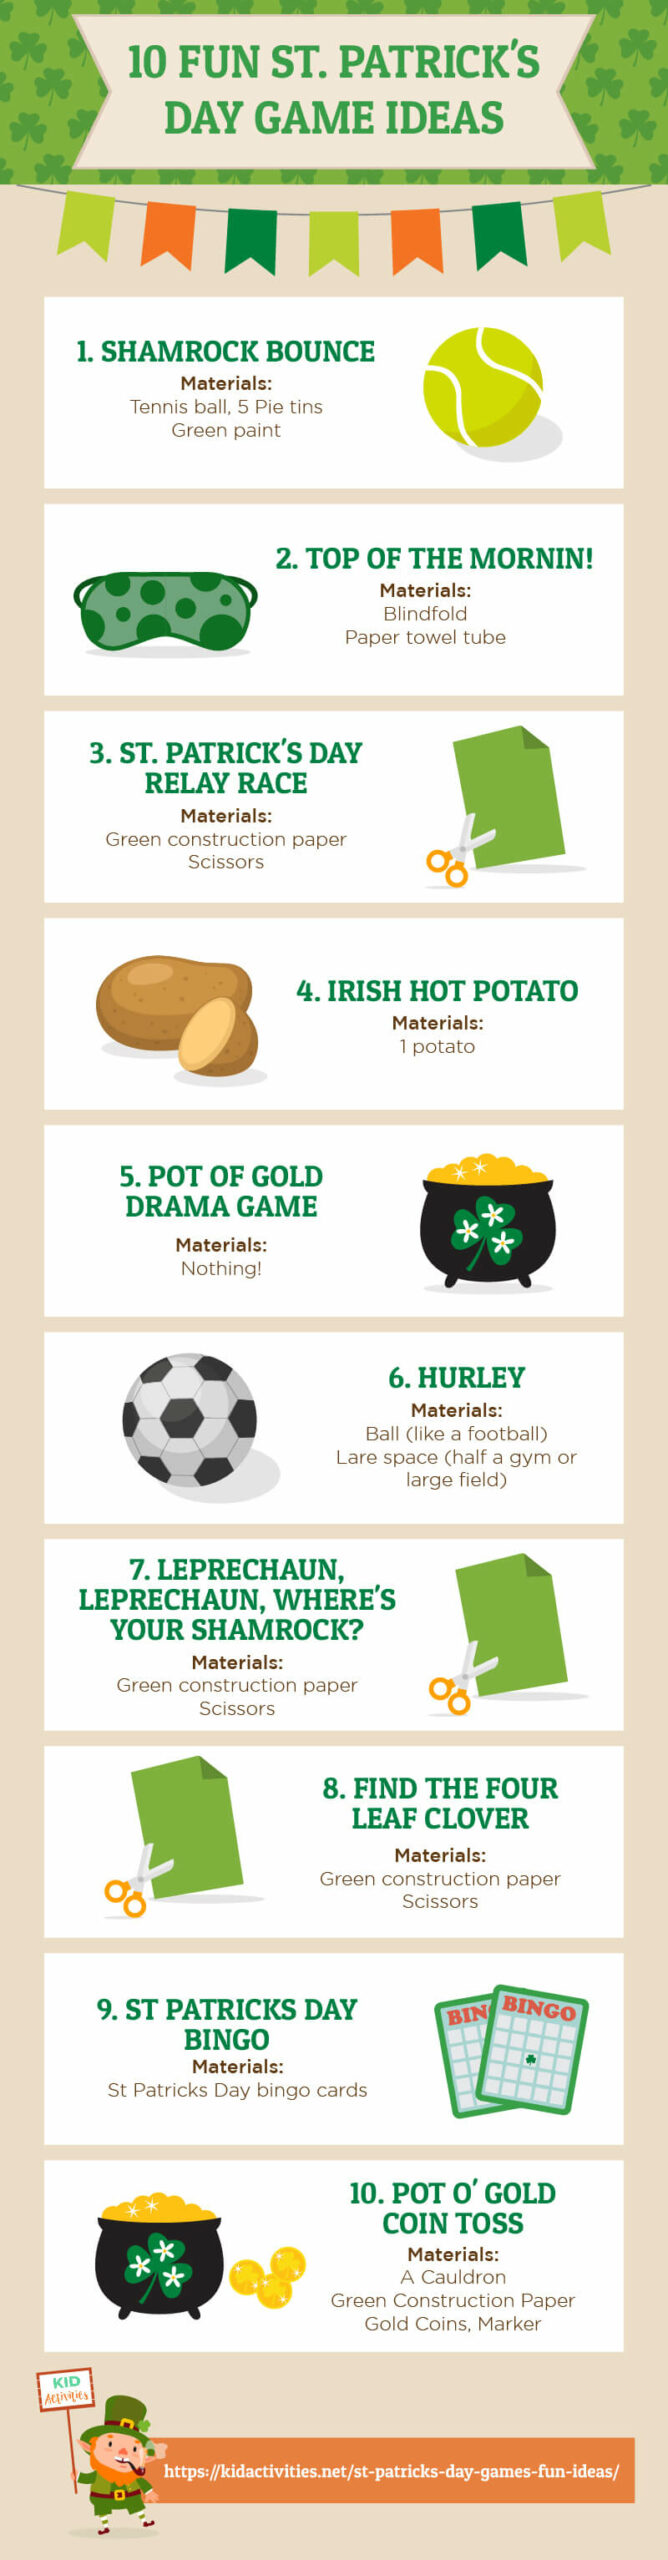 An infographic containing 10 St Patrick's Day game ideas.